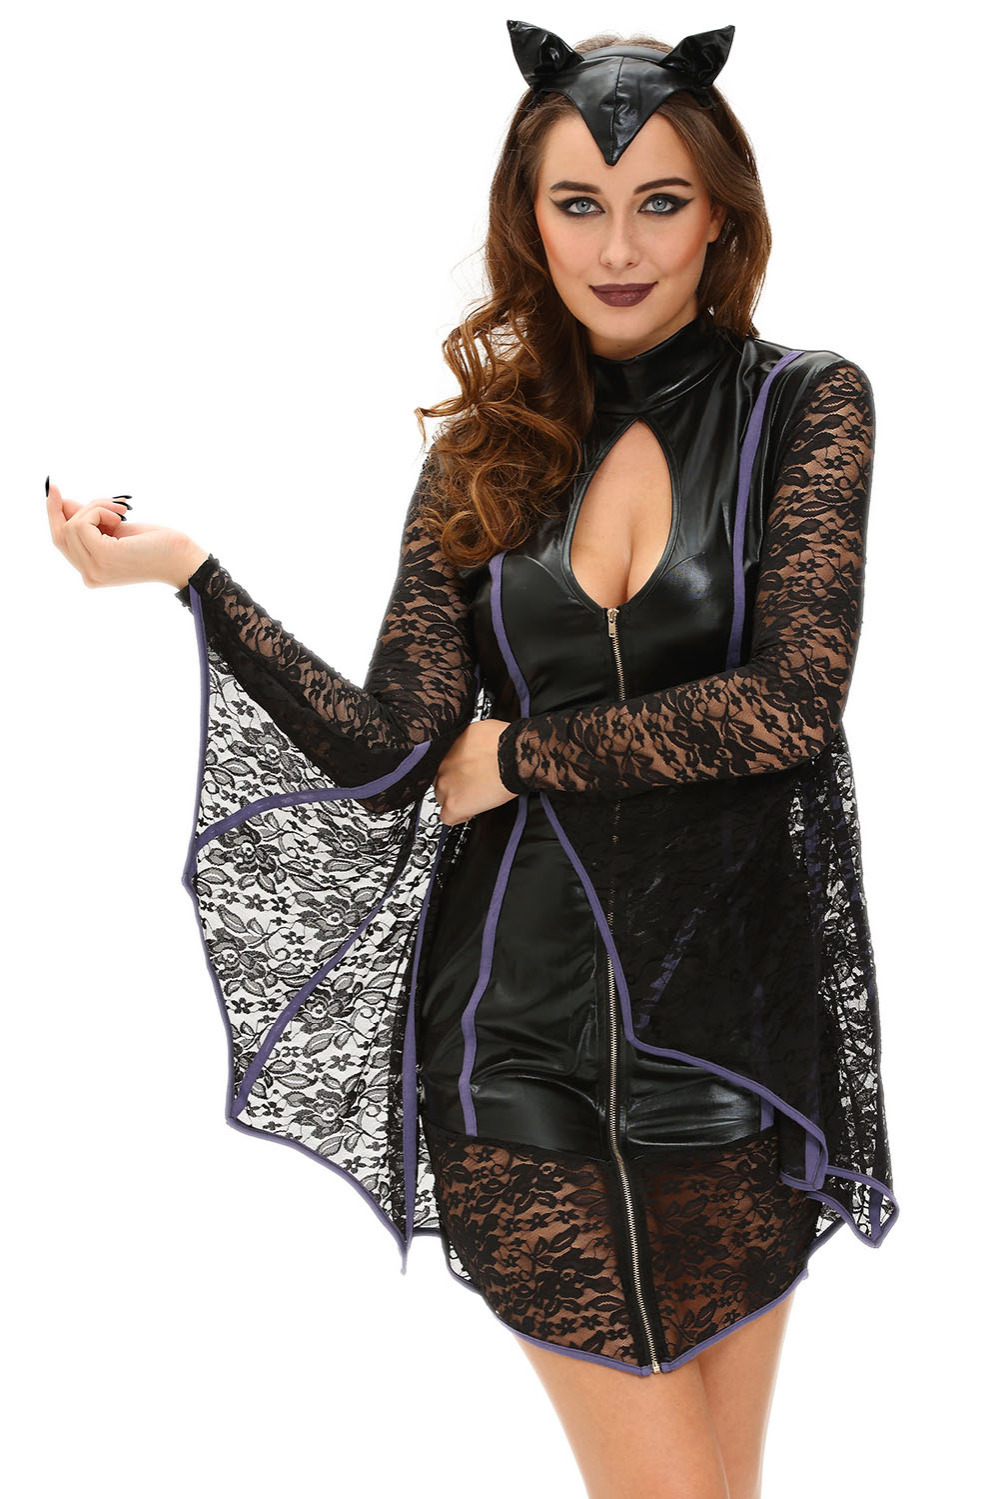 Wwe Costumes For Halloween Photo Album. Best 20 Wwe outfits ideas ...